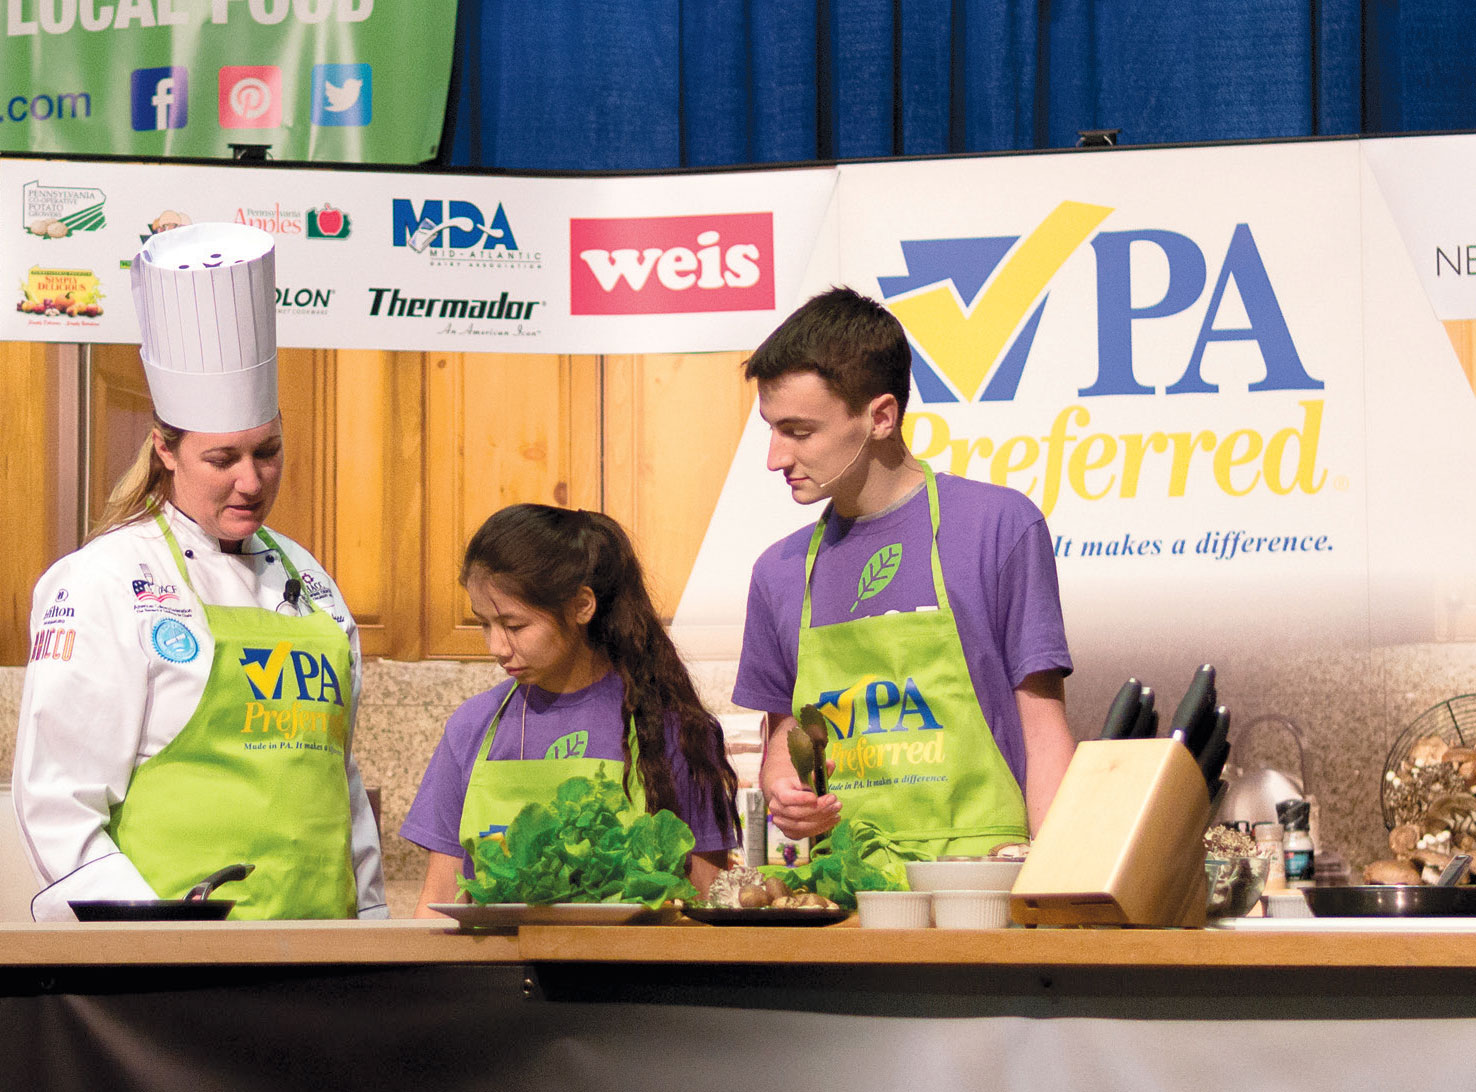 Students from the L.E.A.F. youth leadership program join Chef Autumn Patti on the Culinary Connections stage